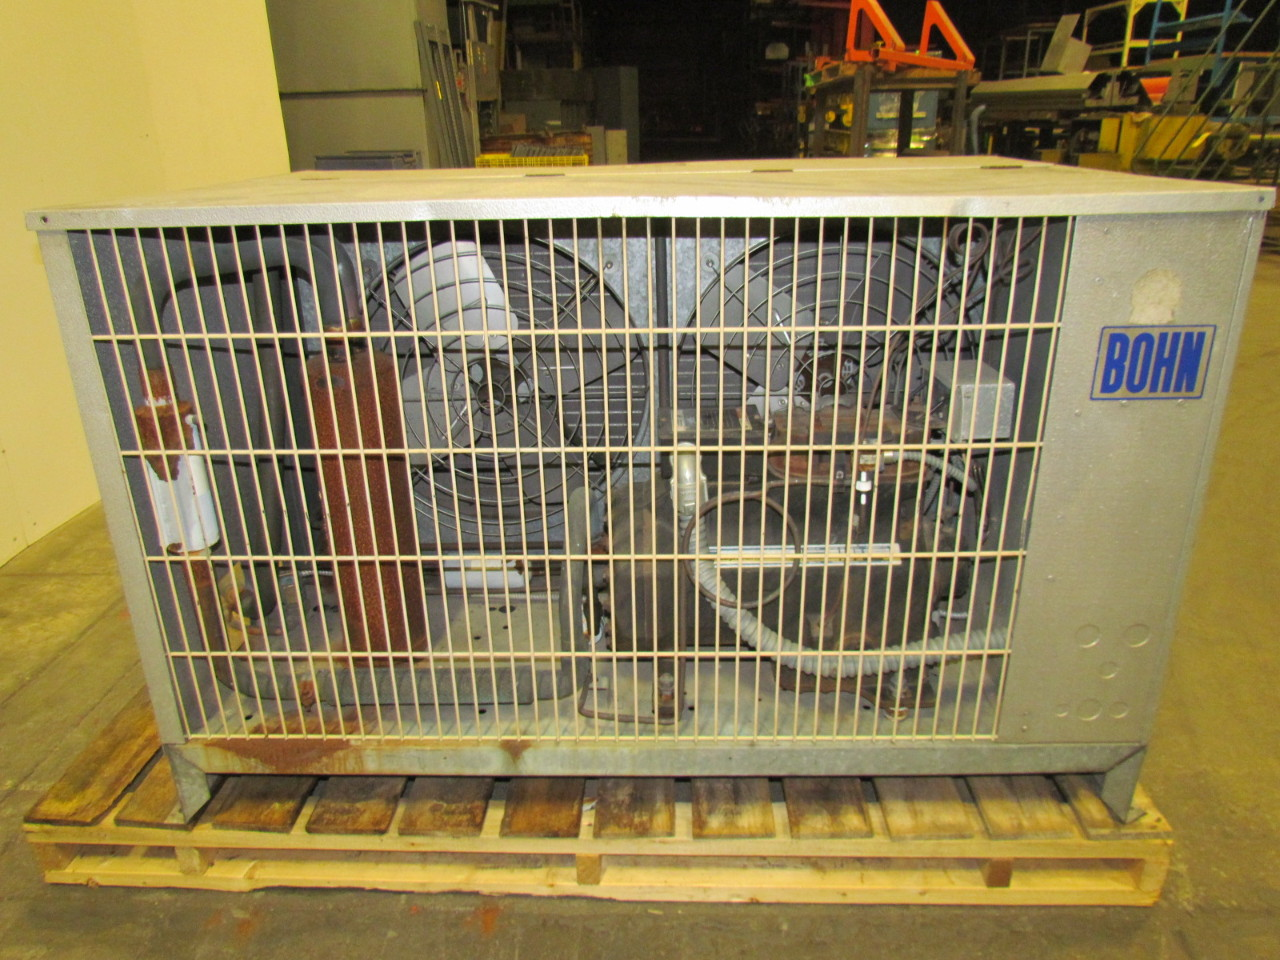 Outdoor Air Cooled Condensing Unit 208 230V 3PH 2 Cooling Fan eBay #A48827